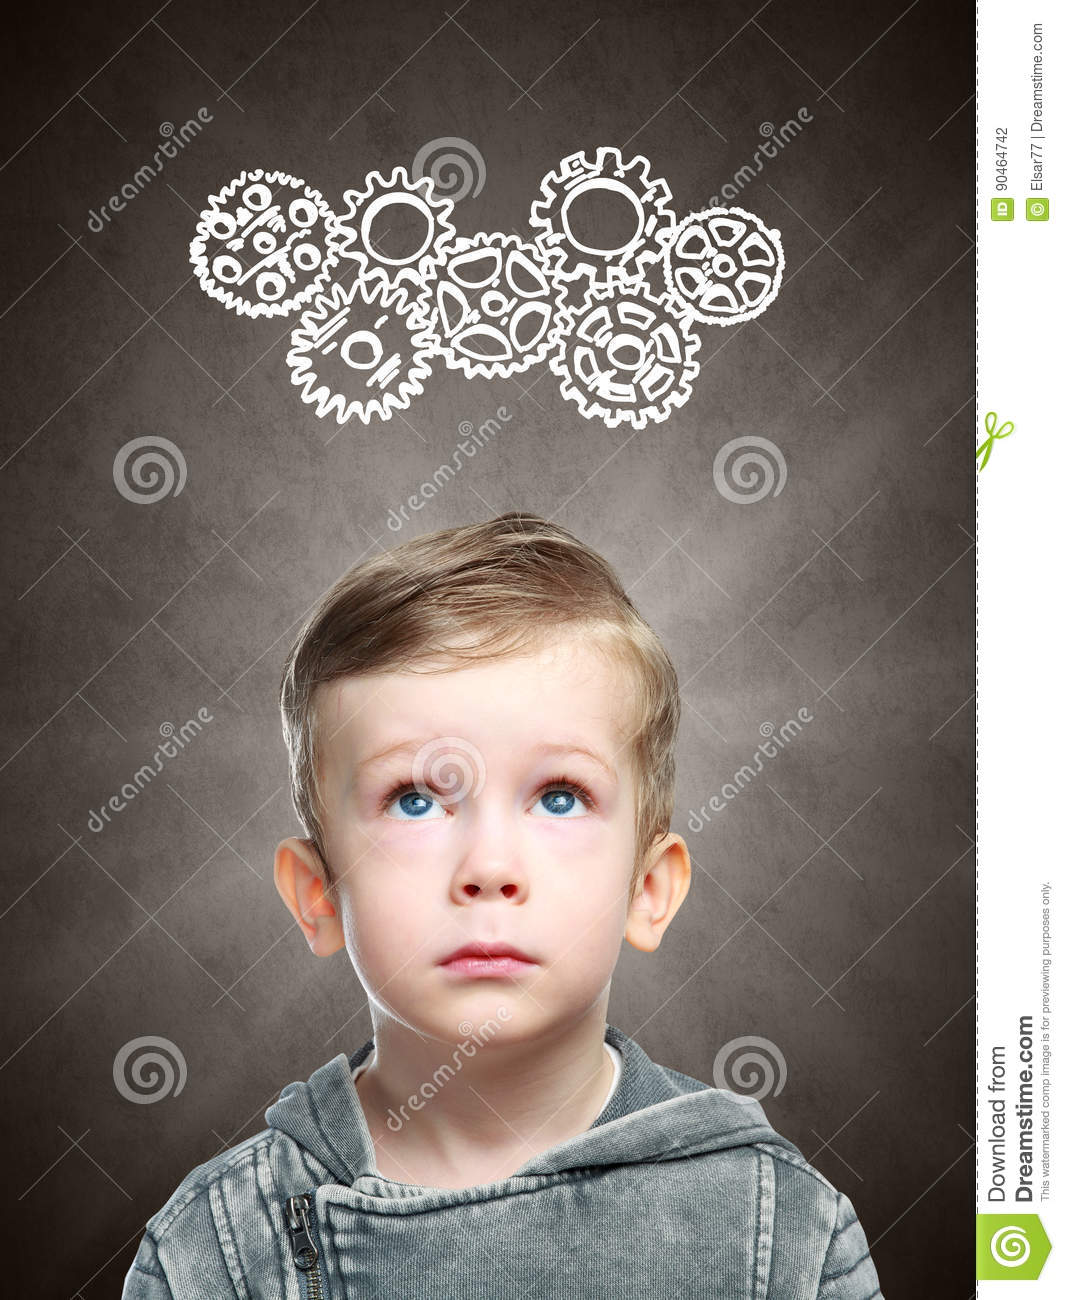 Smart child thinks of looking at gears